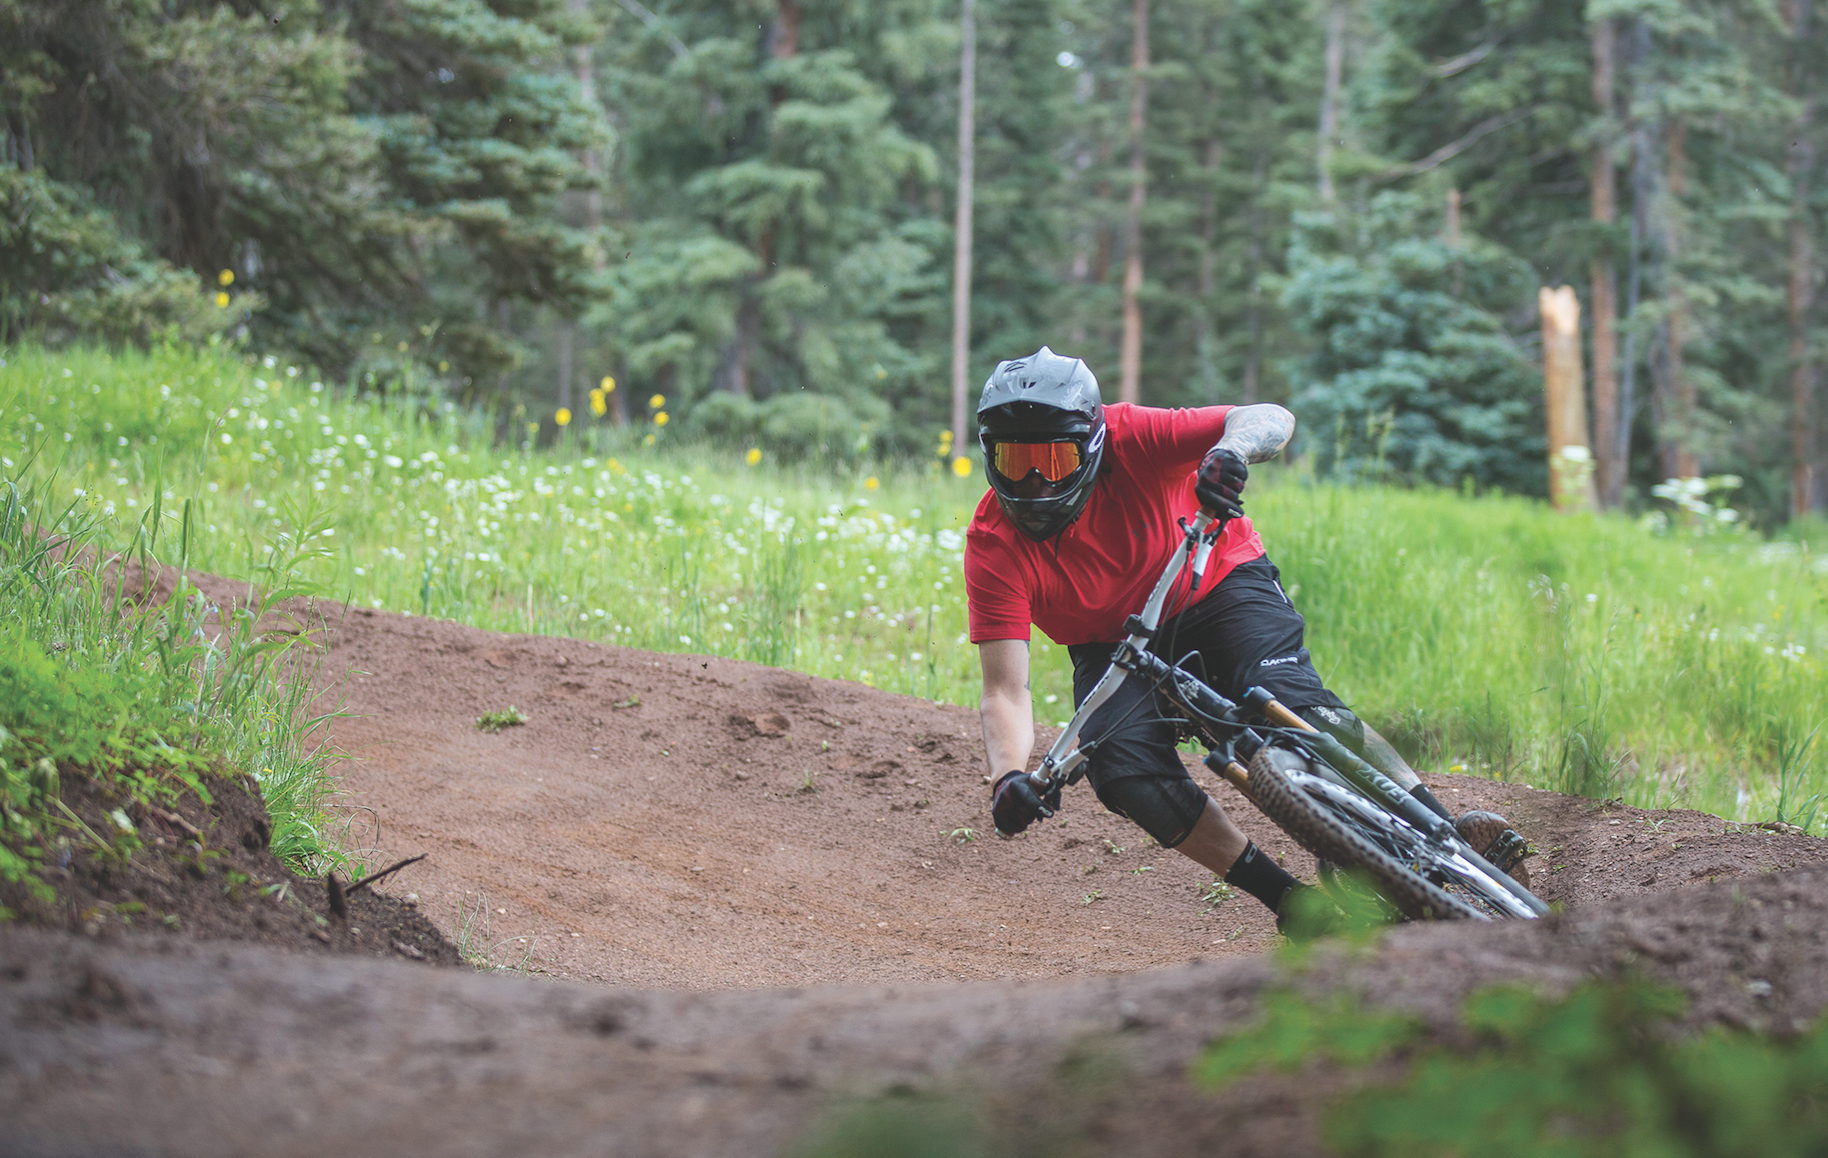 Downhill Biking at Purgatory